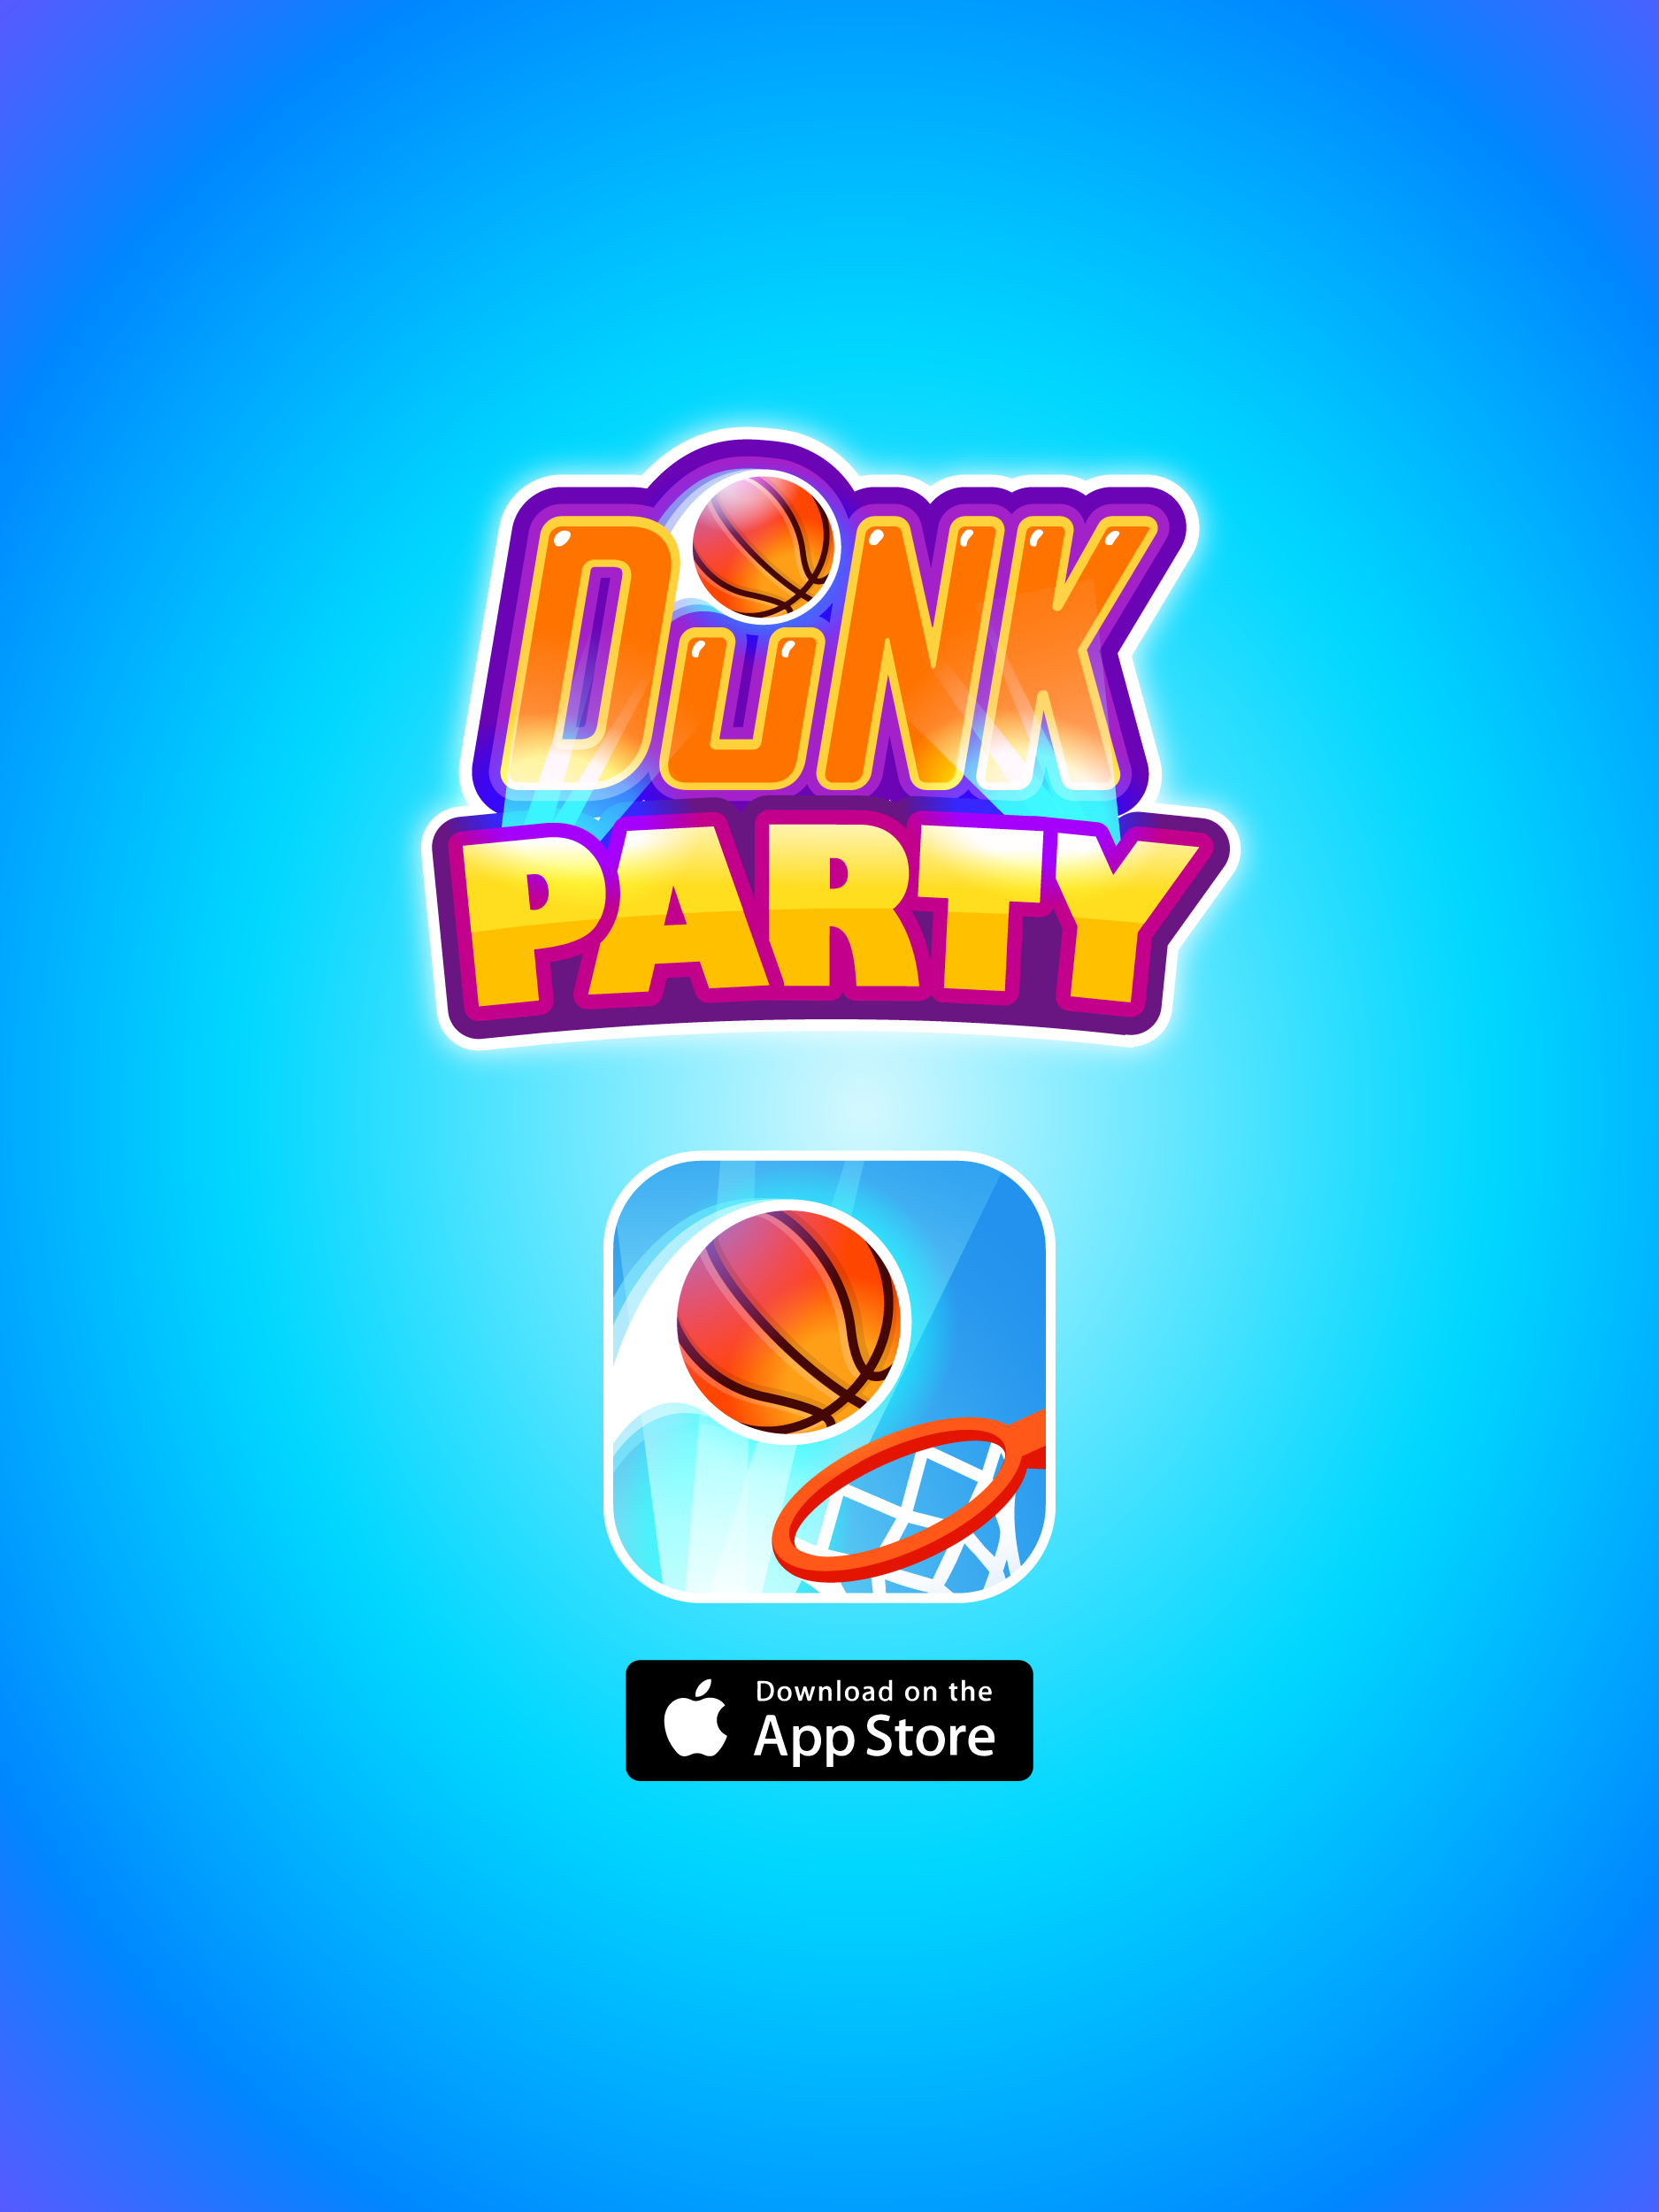 Dunk Party - Free game! Download it on AppStore